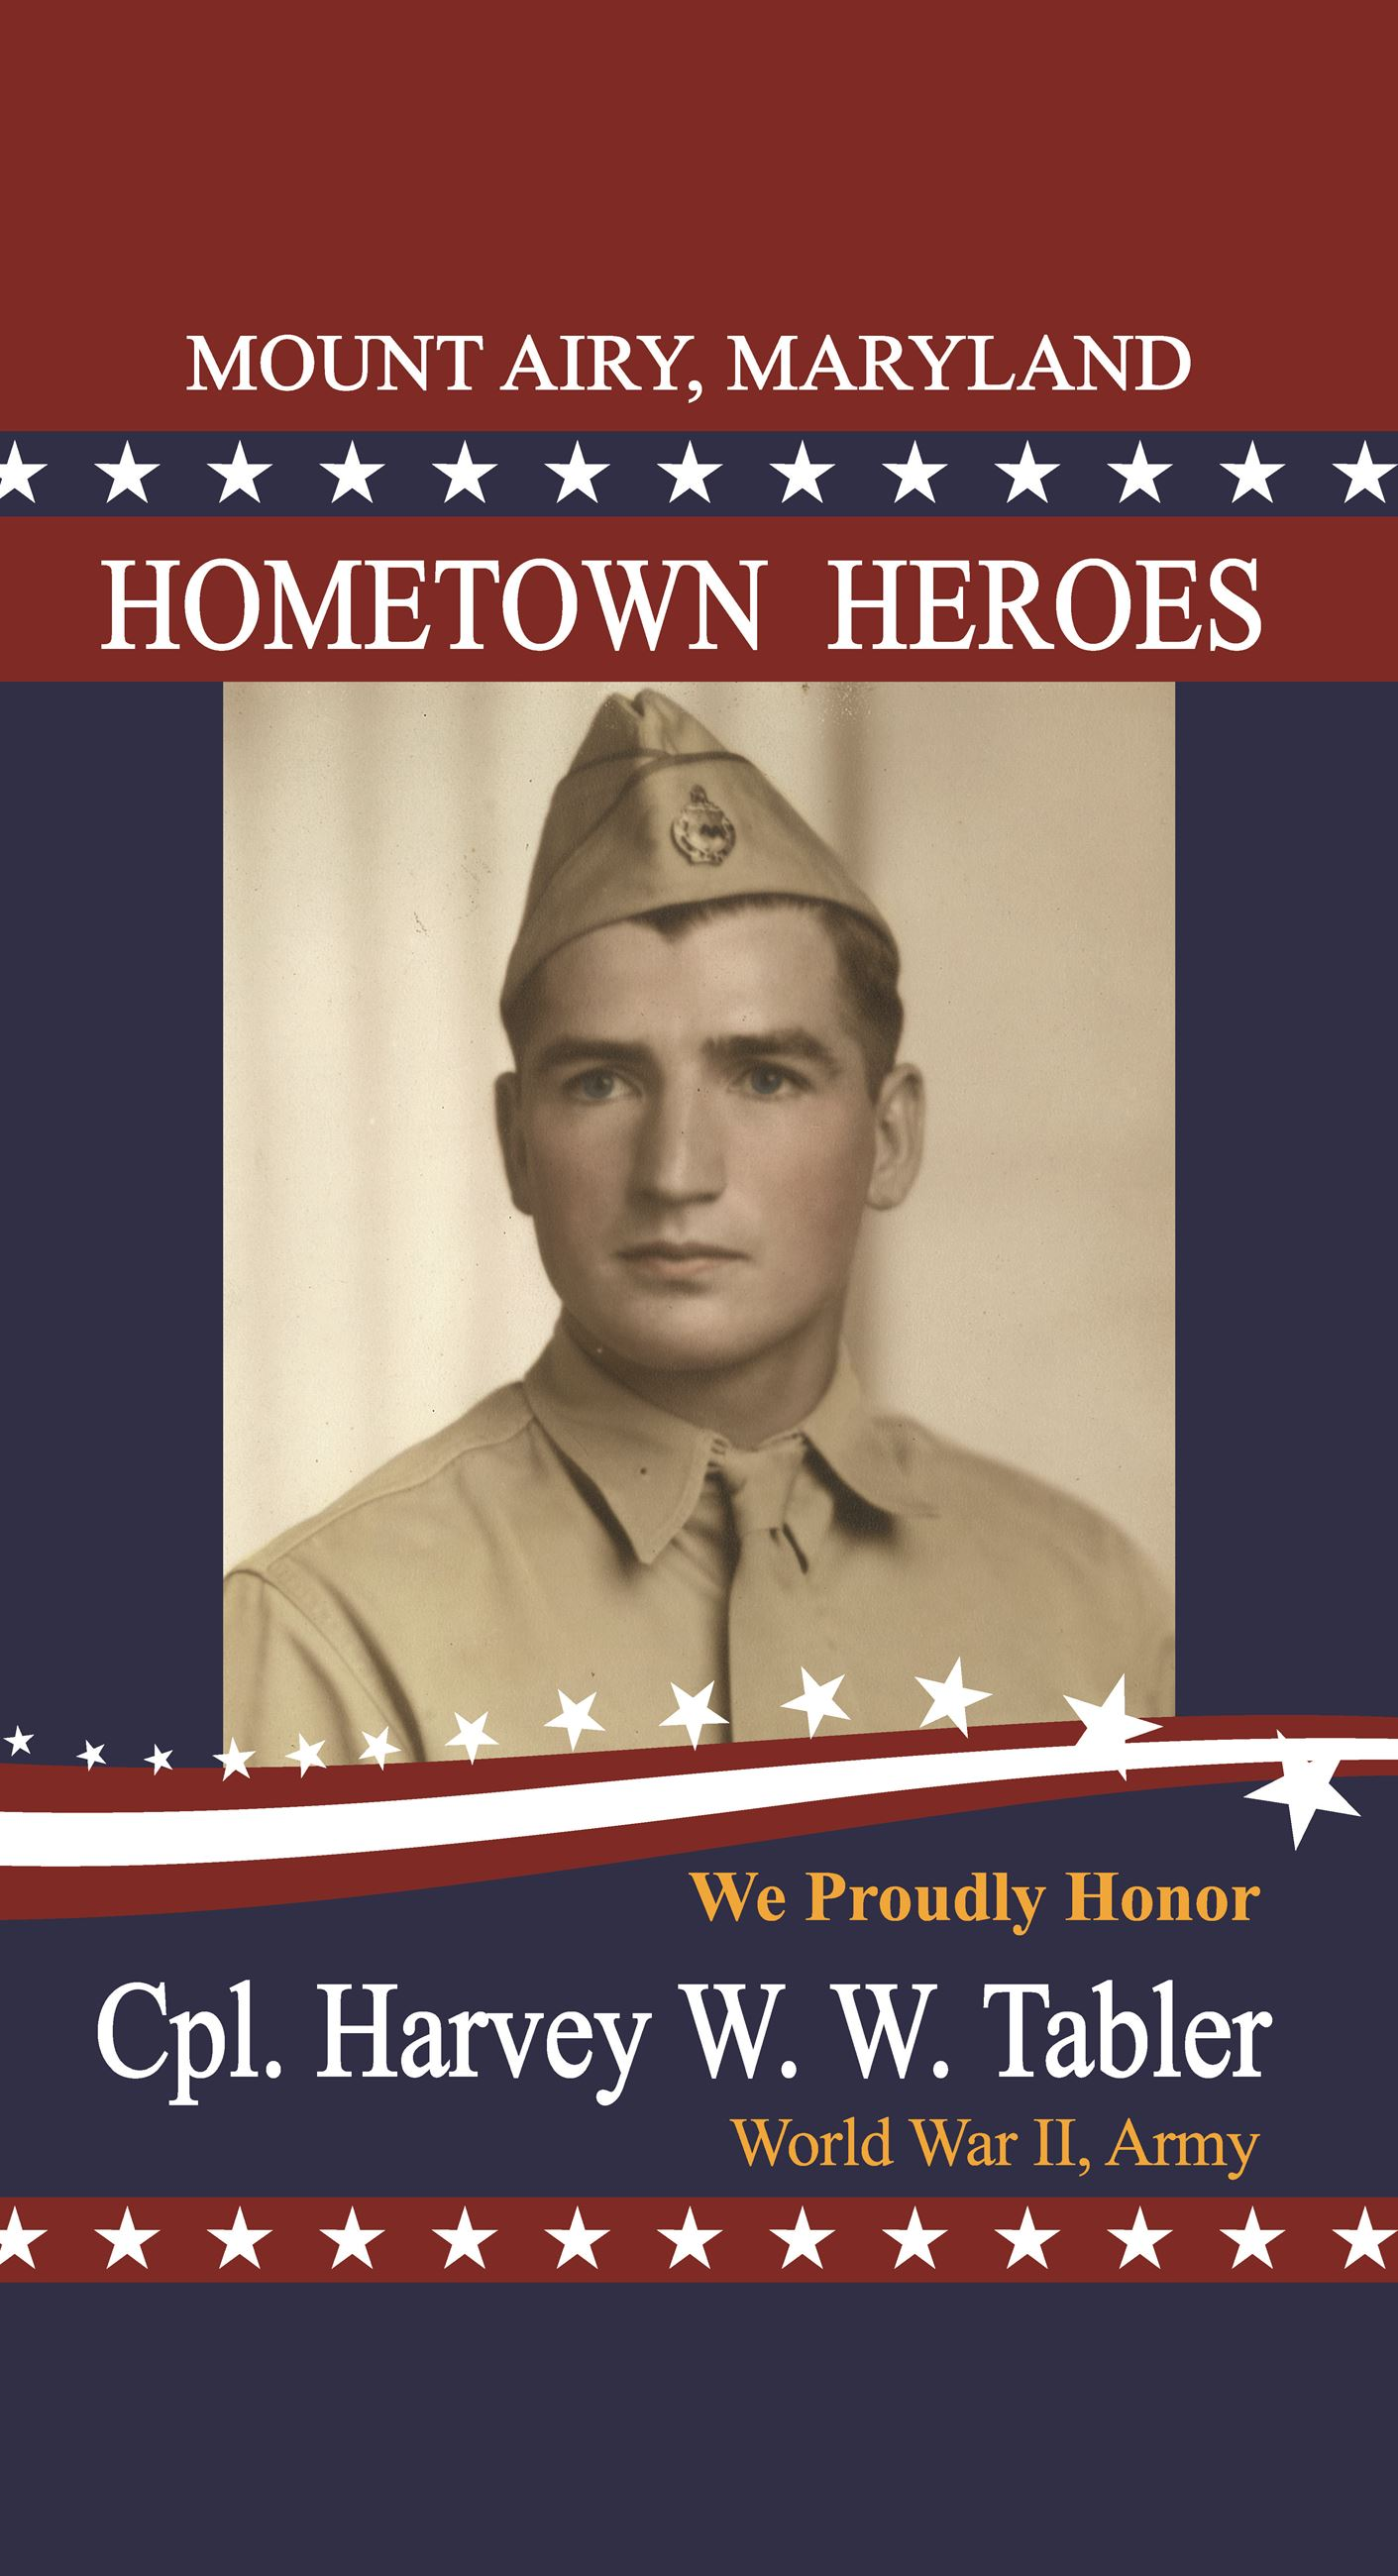 HarveyWWTabler_MtAiryHeroes-Flag-24x44-Proof003